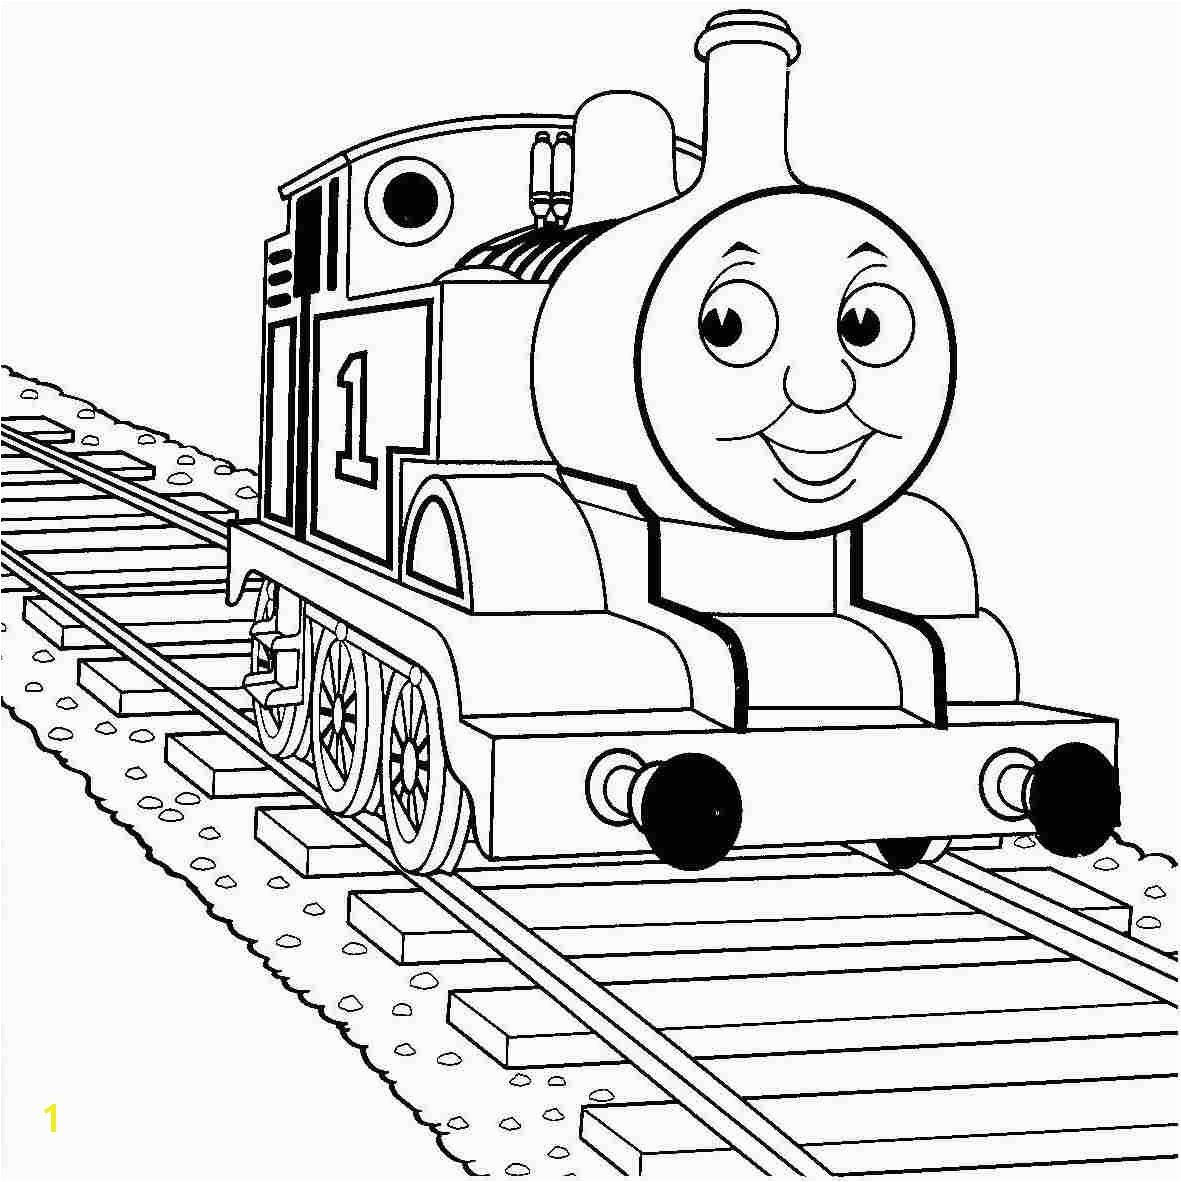 Thomas the Train Coloring Pages Clever Design Ideas Trains Coloring Pages Thomas the Train 35 Thomas